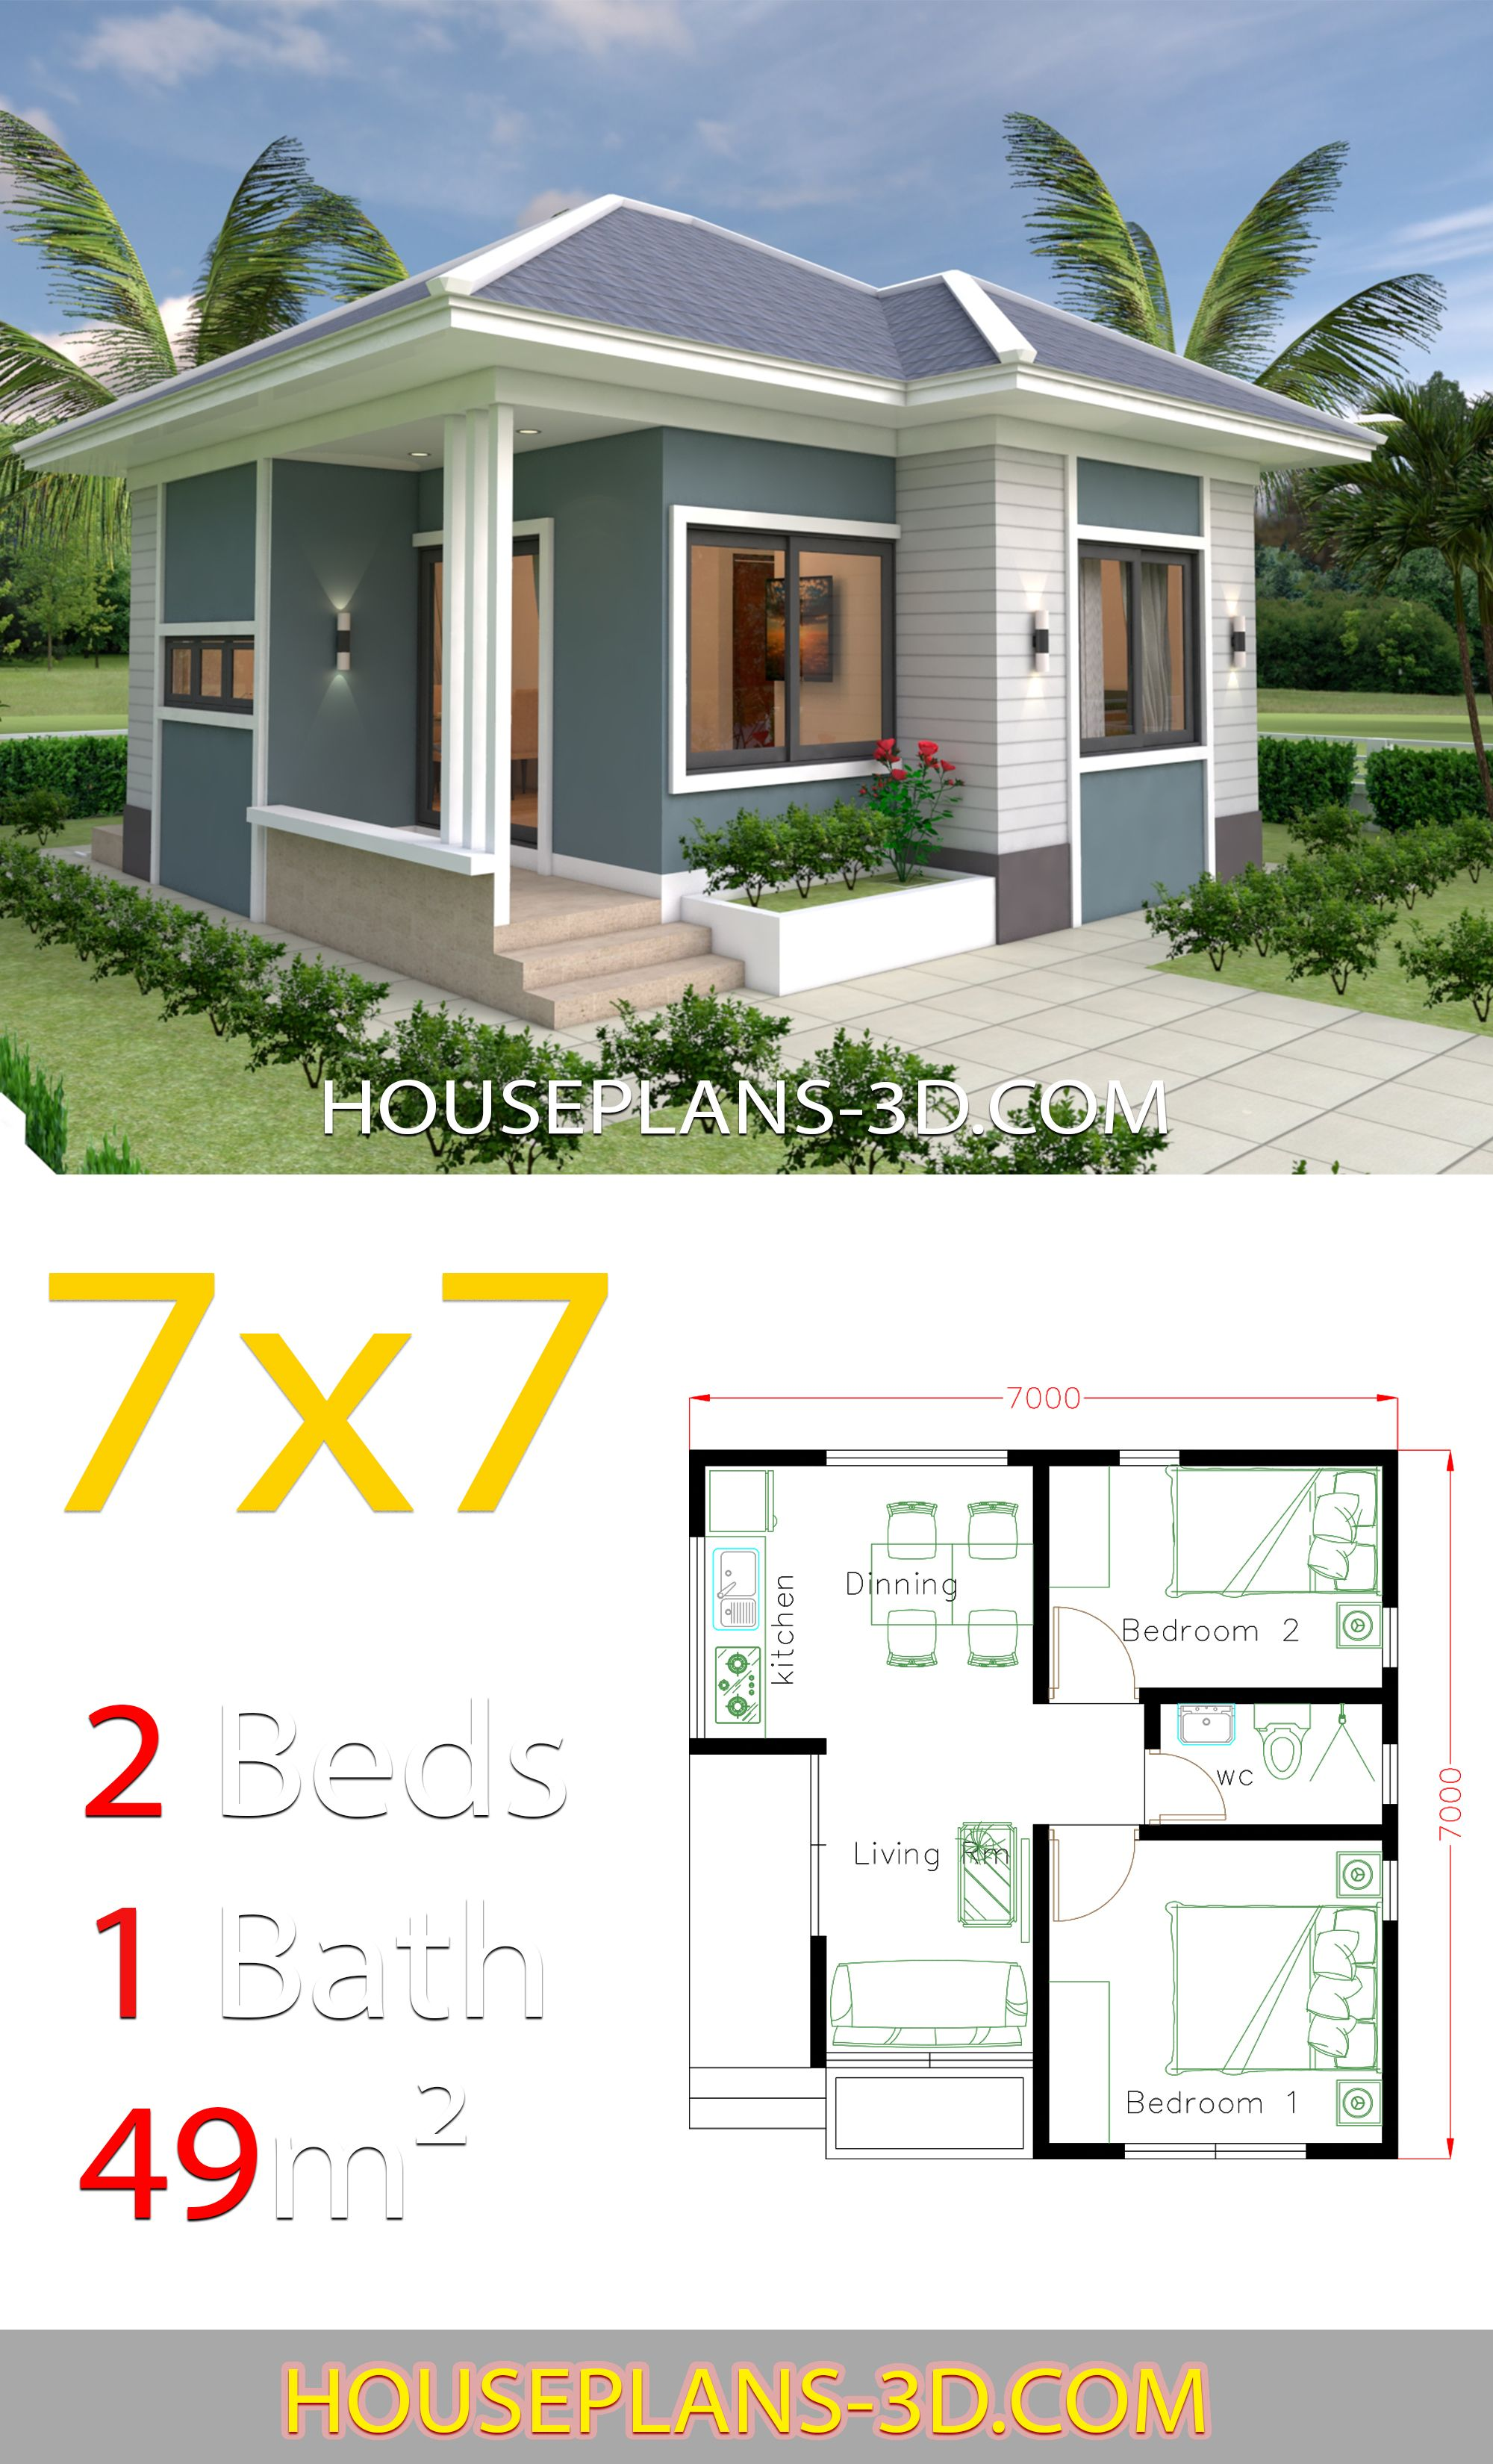 House Design Plans 7x7 With 2 Bedrooms House Plans 3d Small House Design Plans Small House Layout House Design Pictures